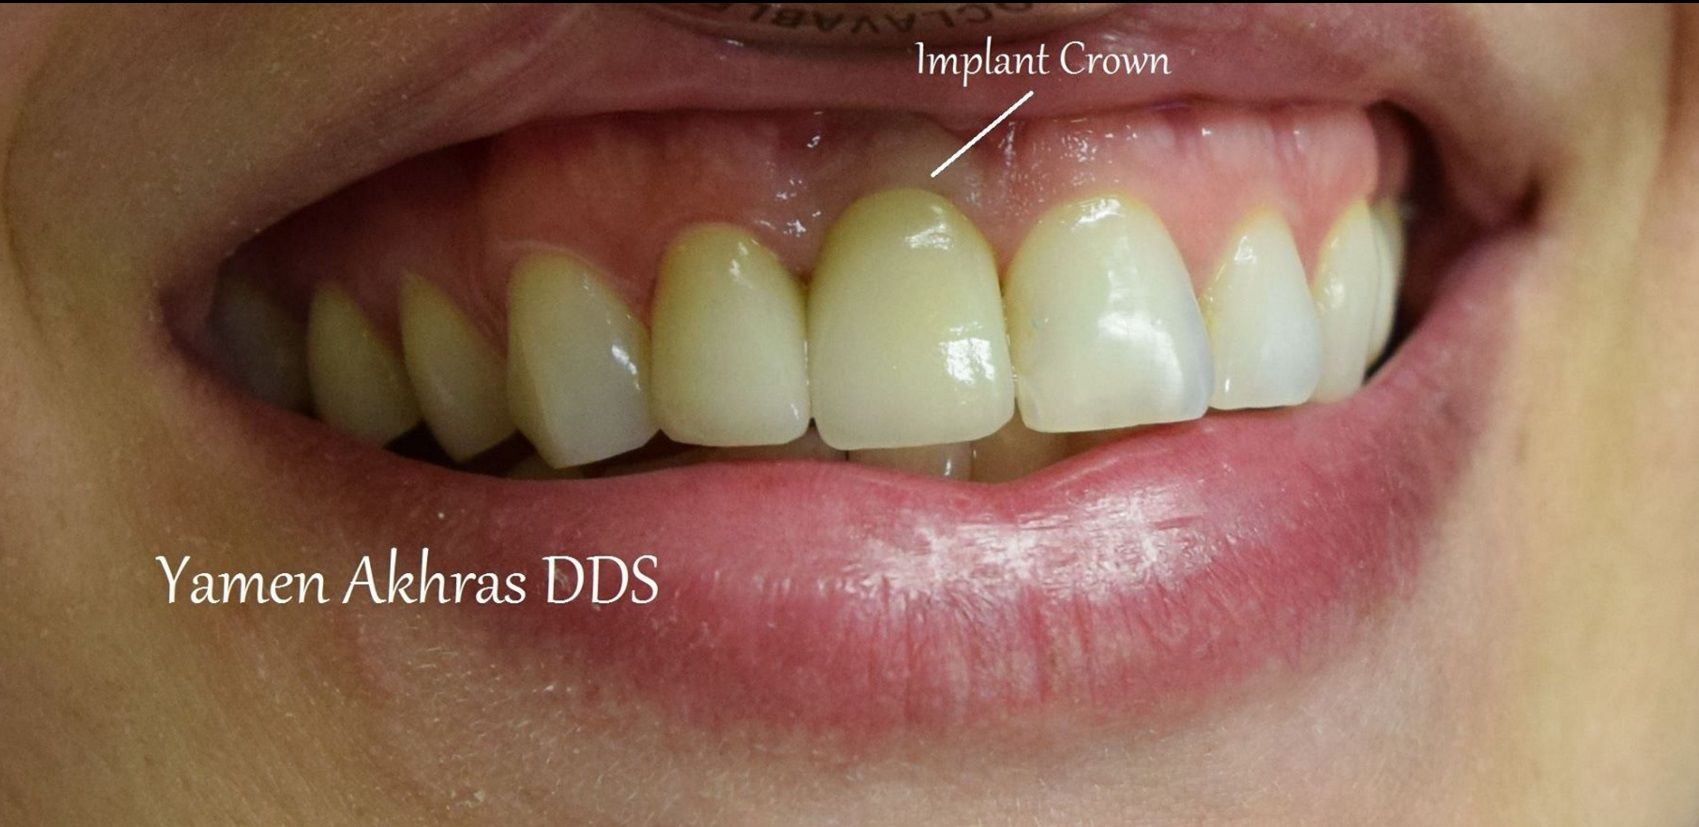 Dr. Akhras's patient after dental implant surgery with a crown.